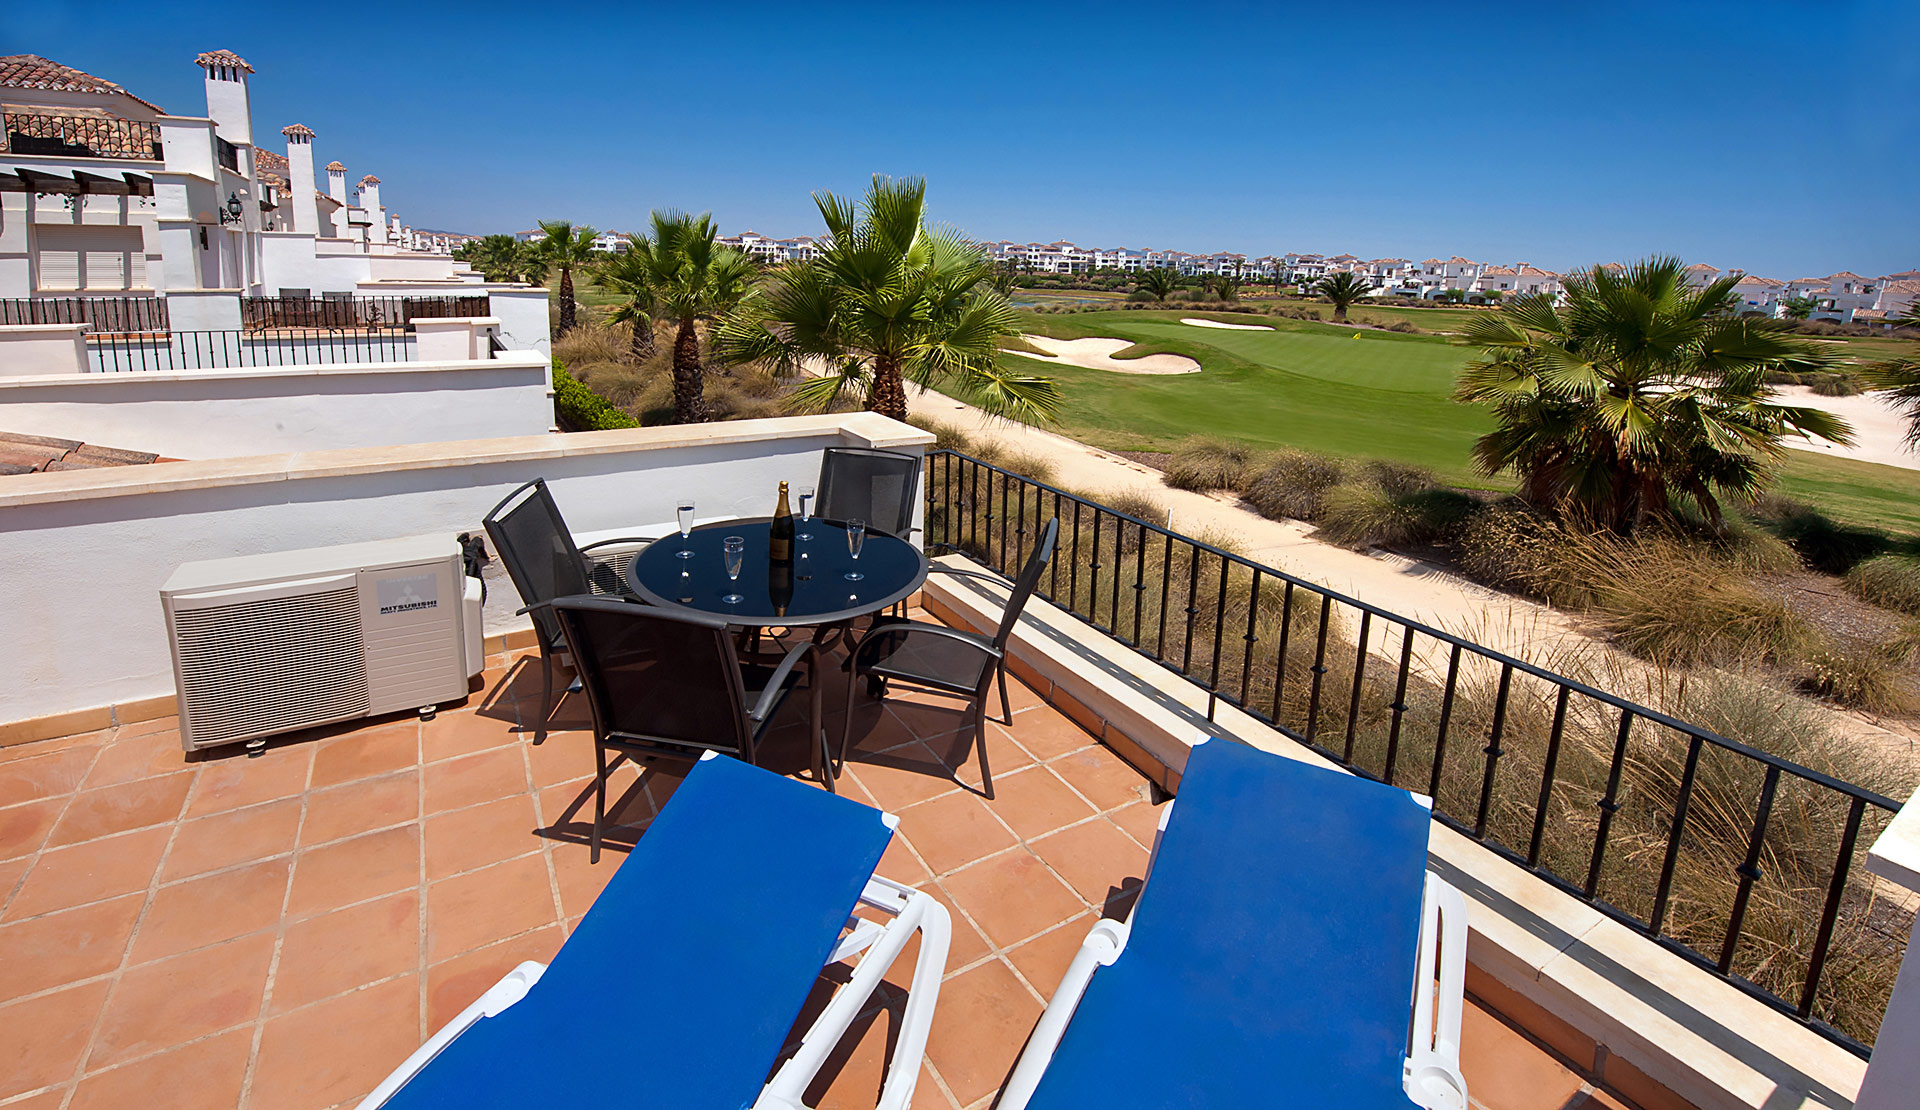 Holiday rental in Murcia, Spain. The terrace, overlooking the golf course at La Torre Golf Resort.